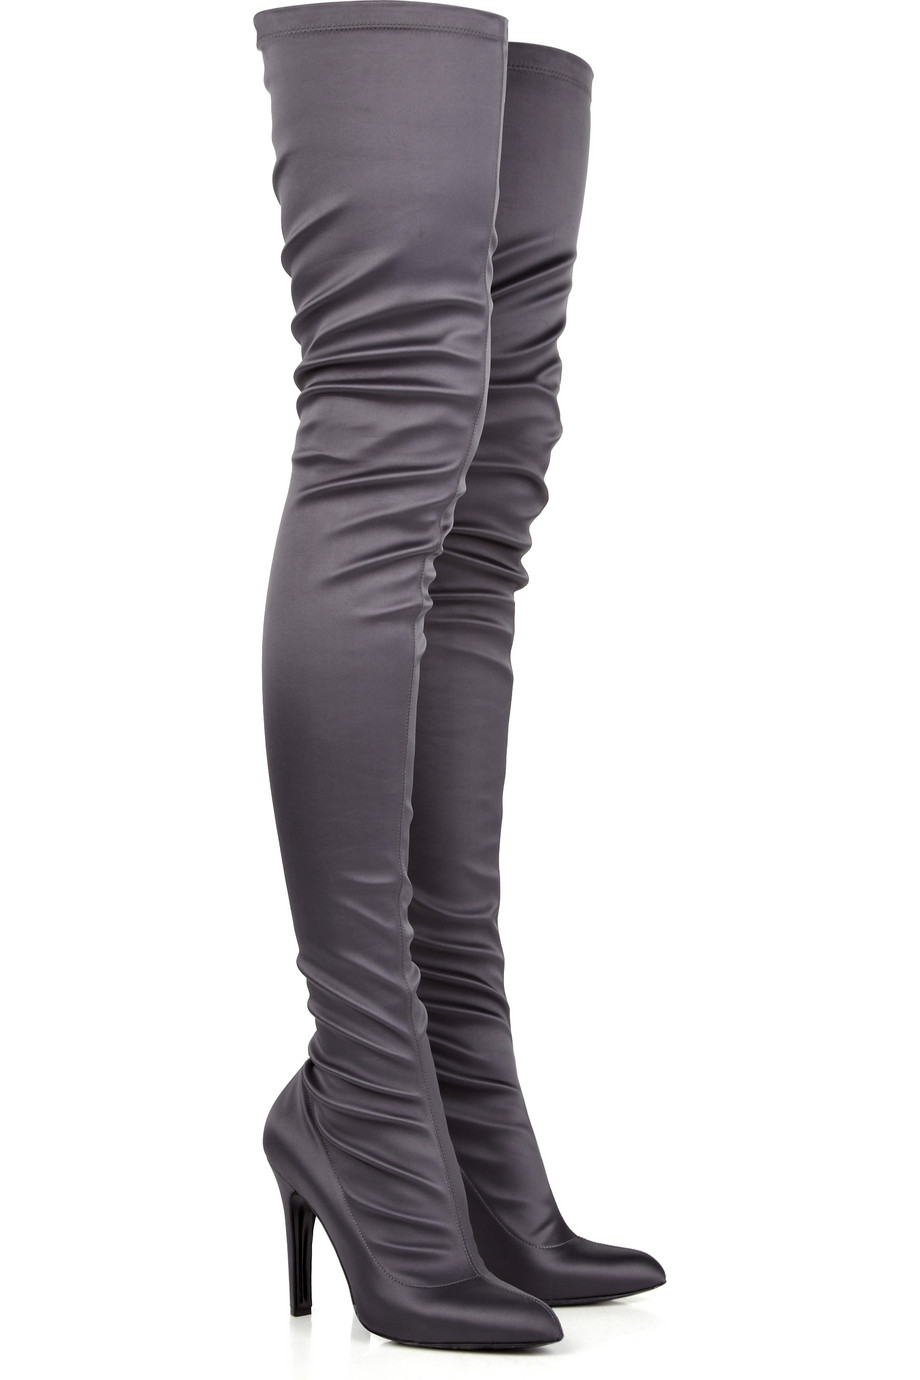 Lyst Stella Mccartney Thigh High Satin Boots In Gray